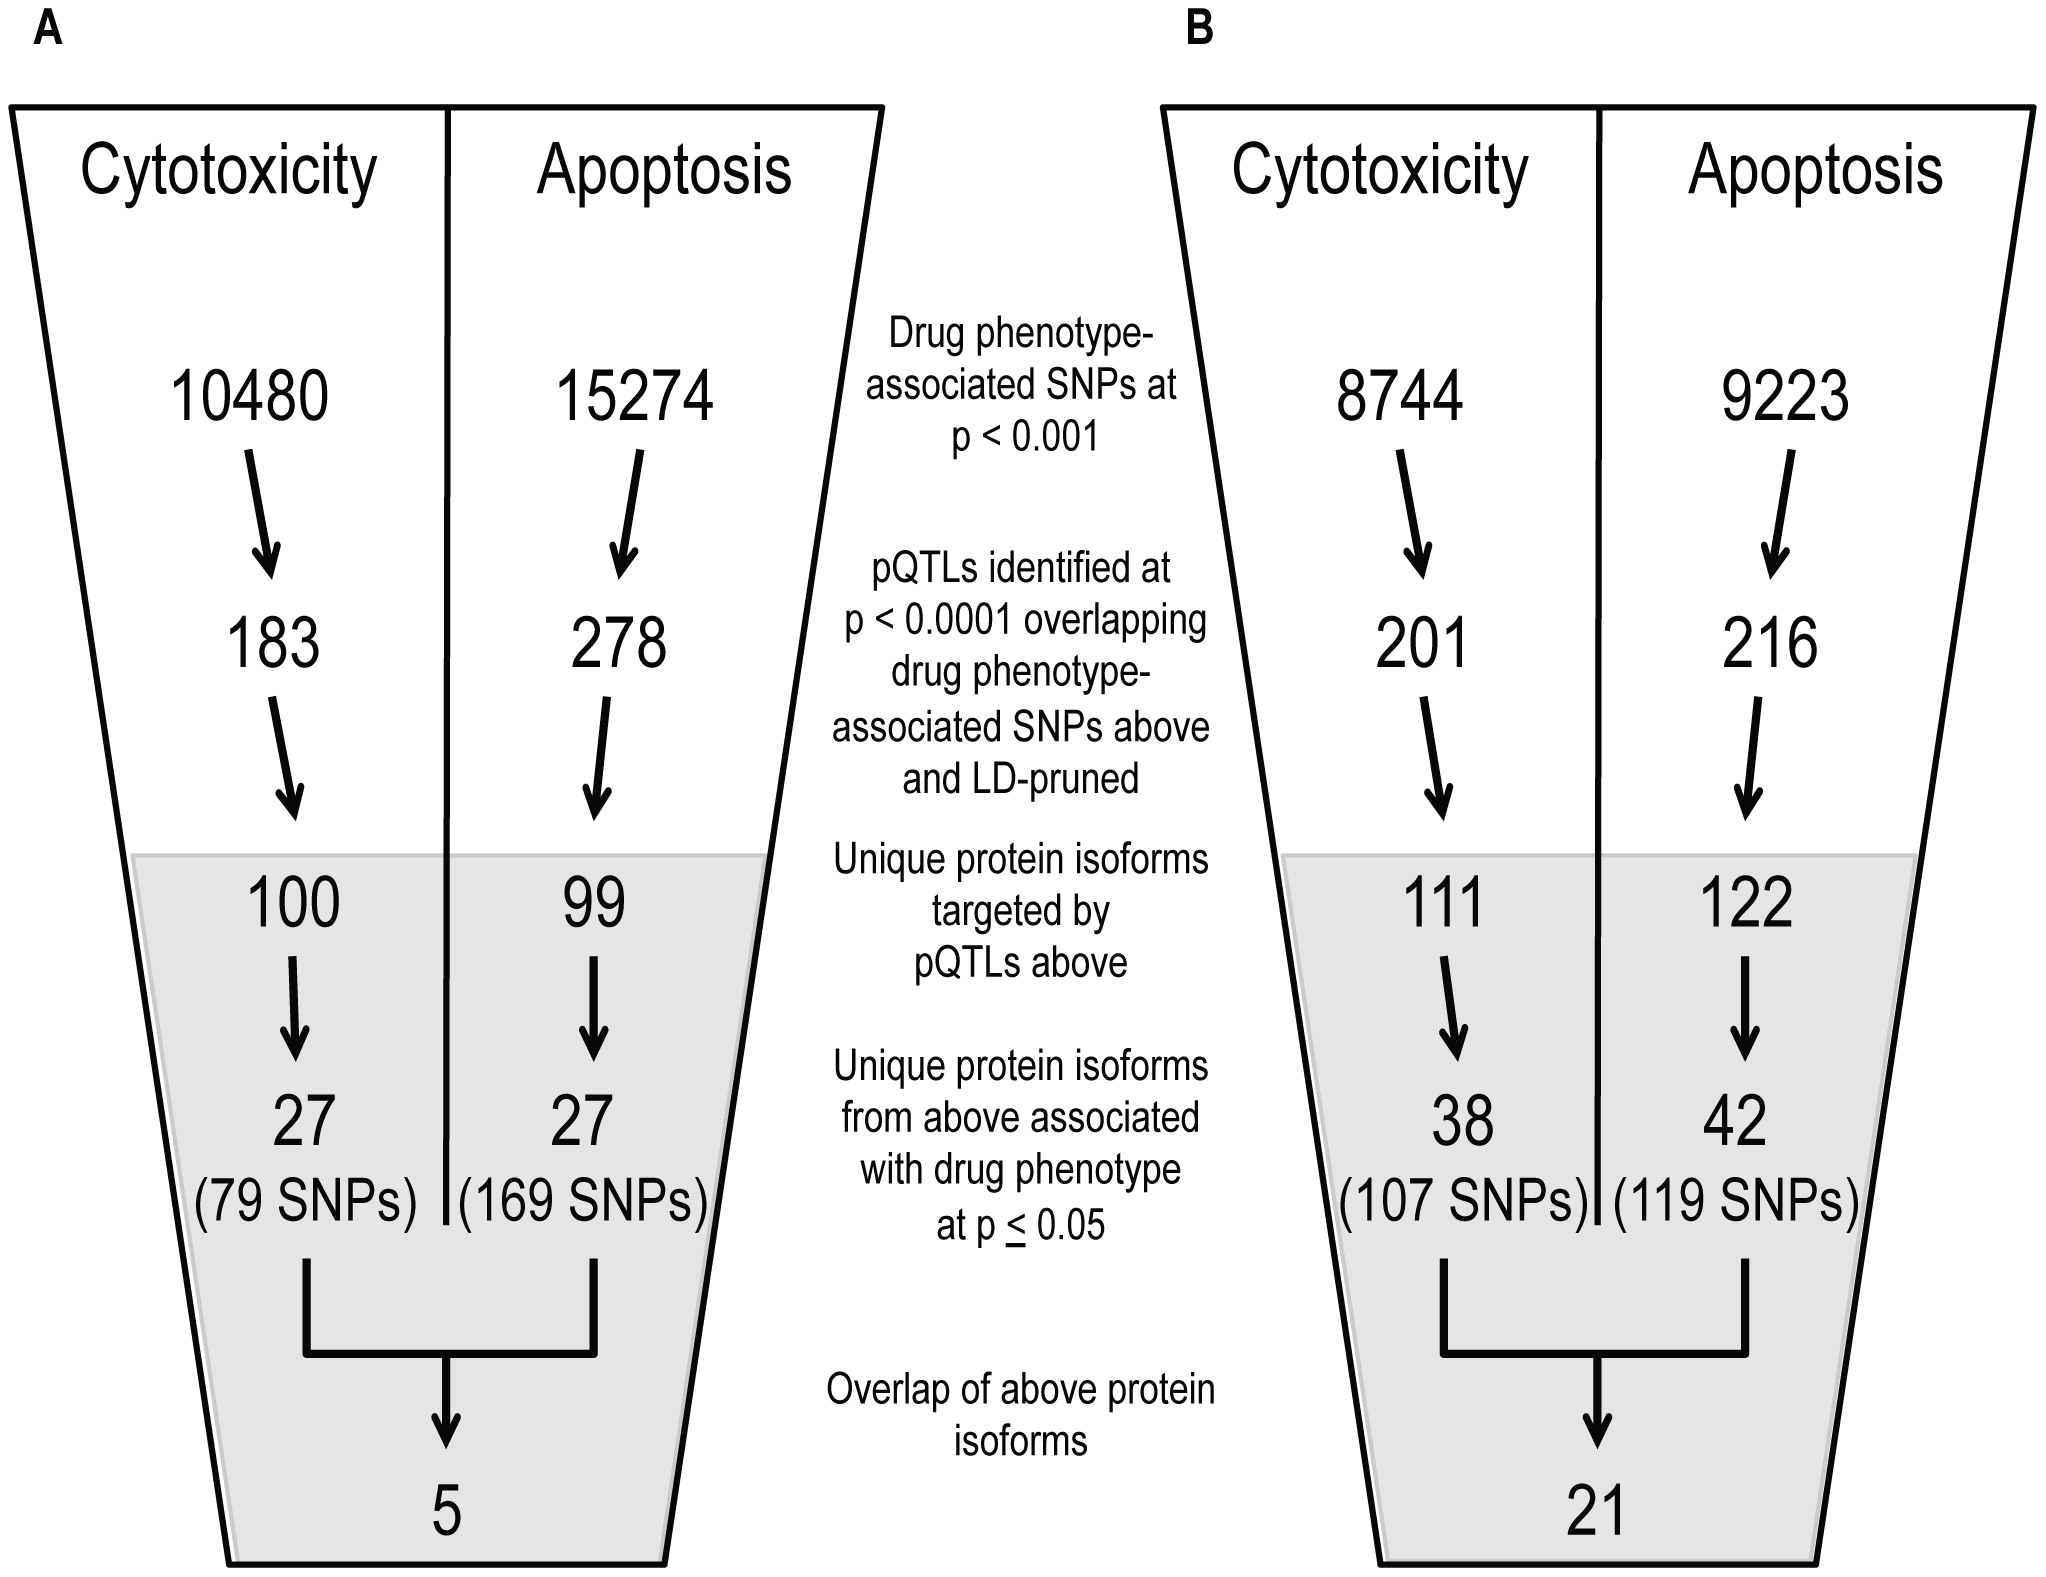 Identification of common proteins associated with differing phenotypes through independent pQTL signals for cisplatin and paclitaxel.